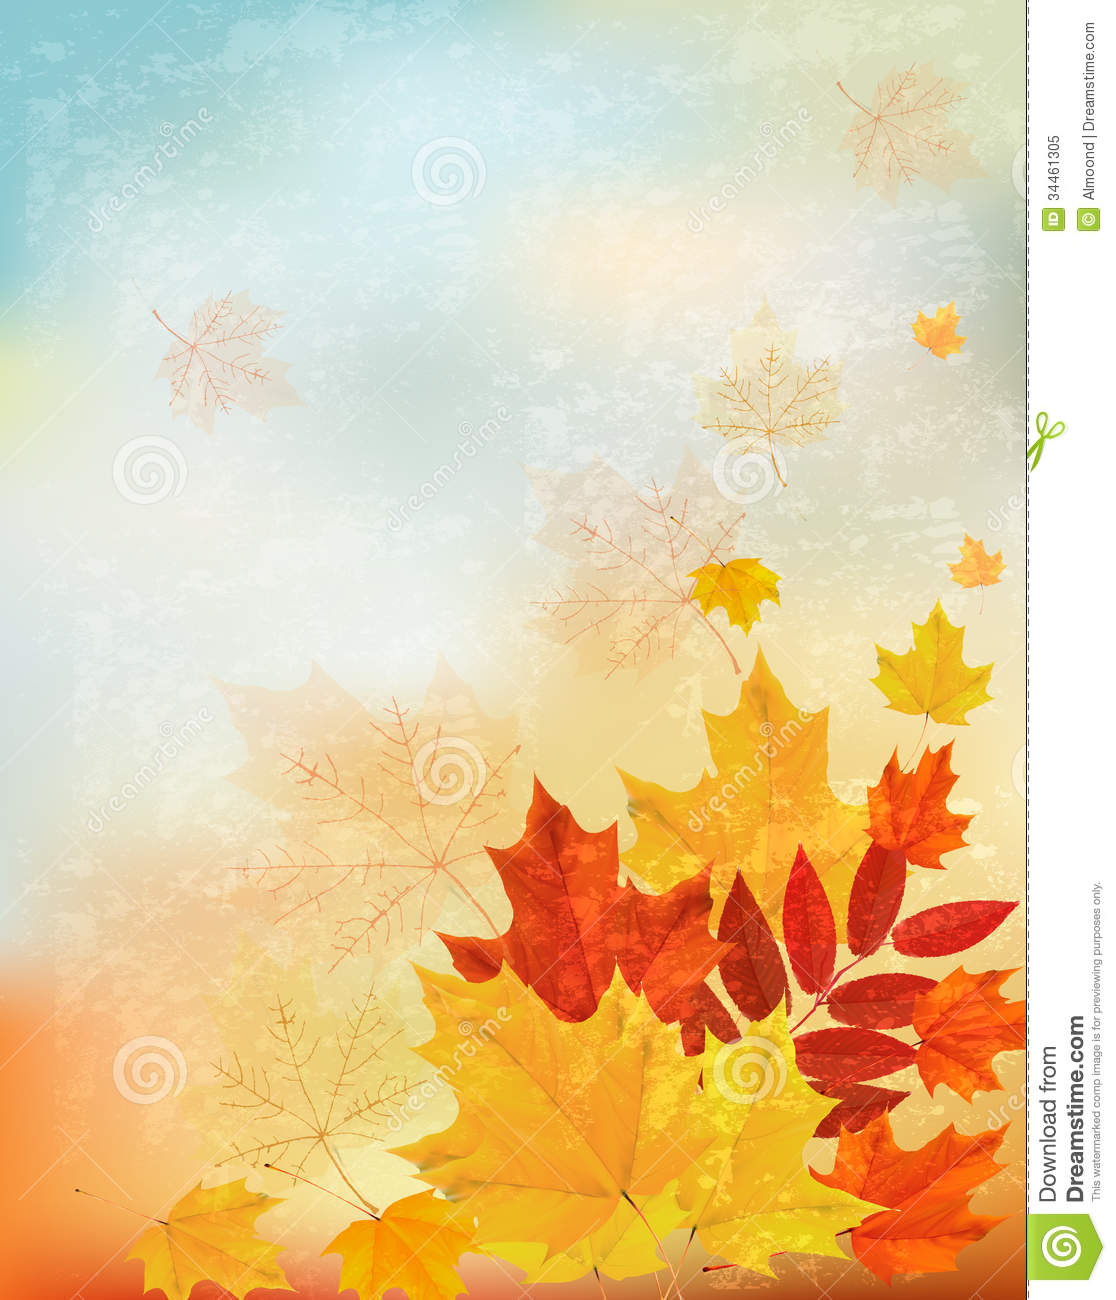 Abstract Retro Autumn Background For Your Design. Stock